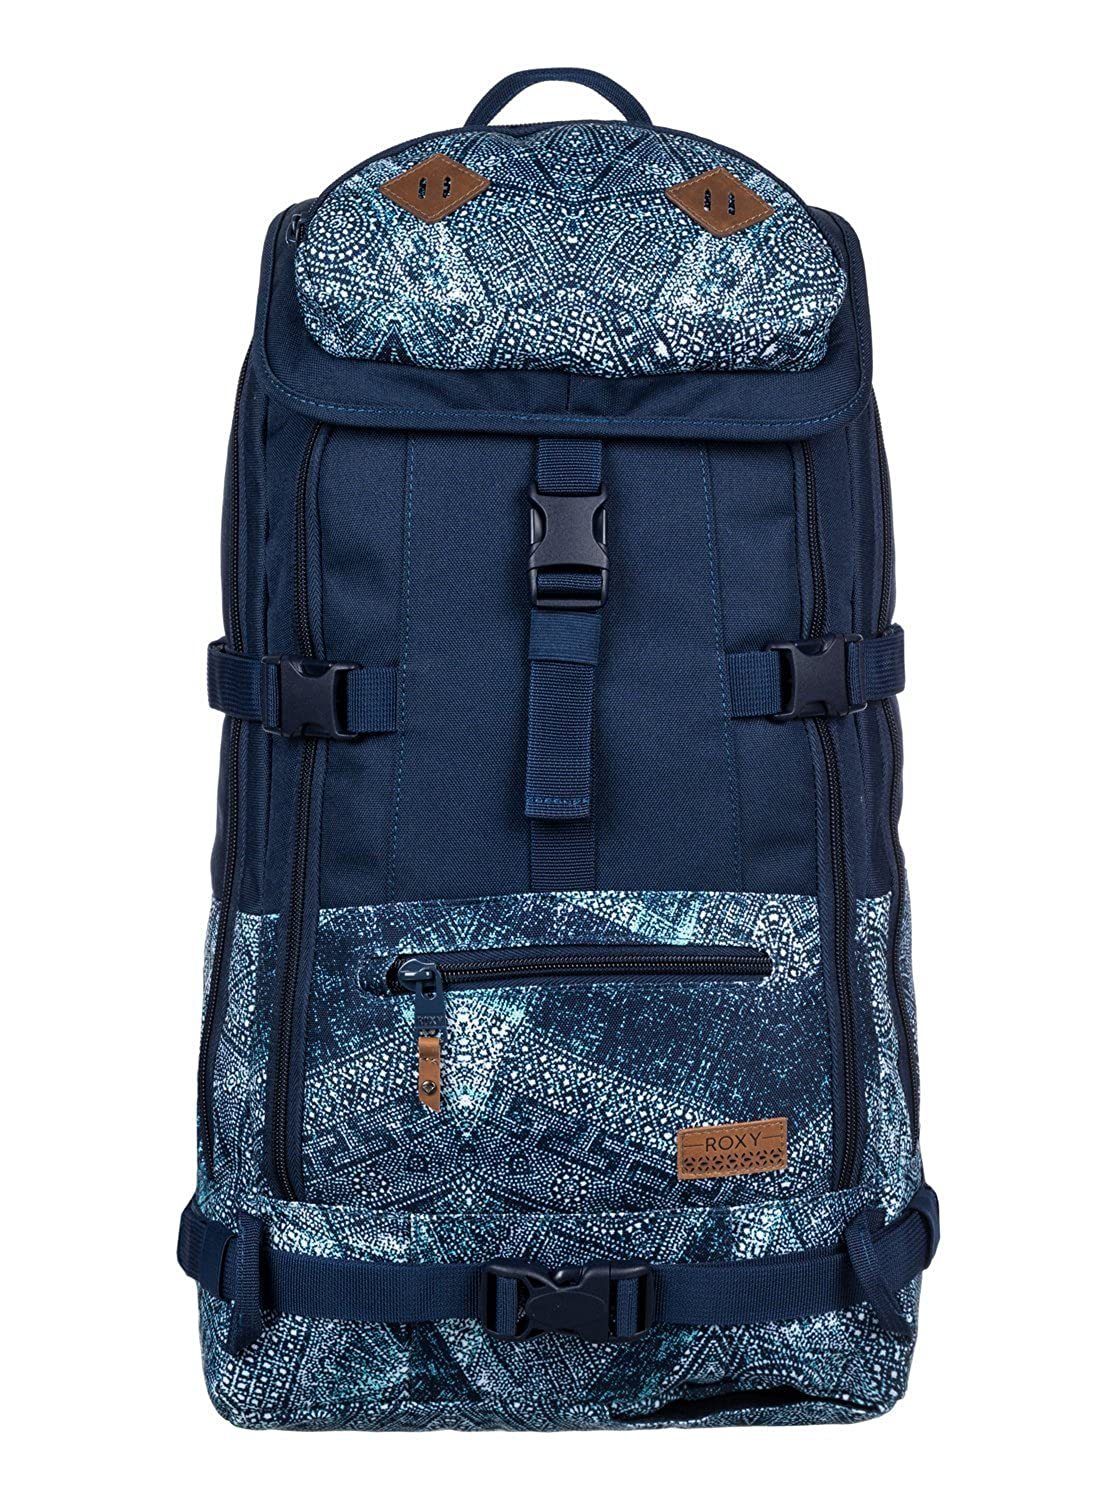 f9ef9c6904 Roxy Tribute - Medium Snow Backpack - Medium Snow Backpack - Women ...